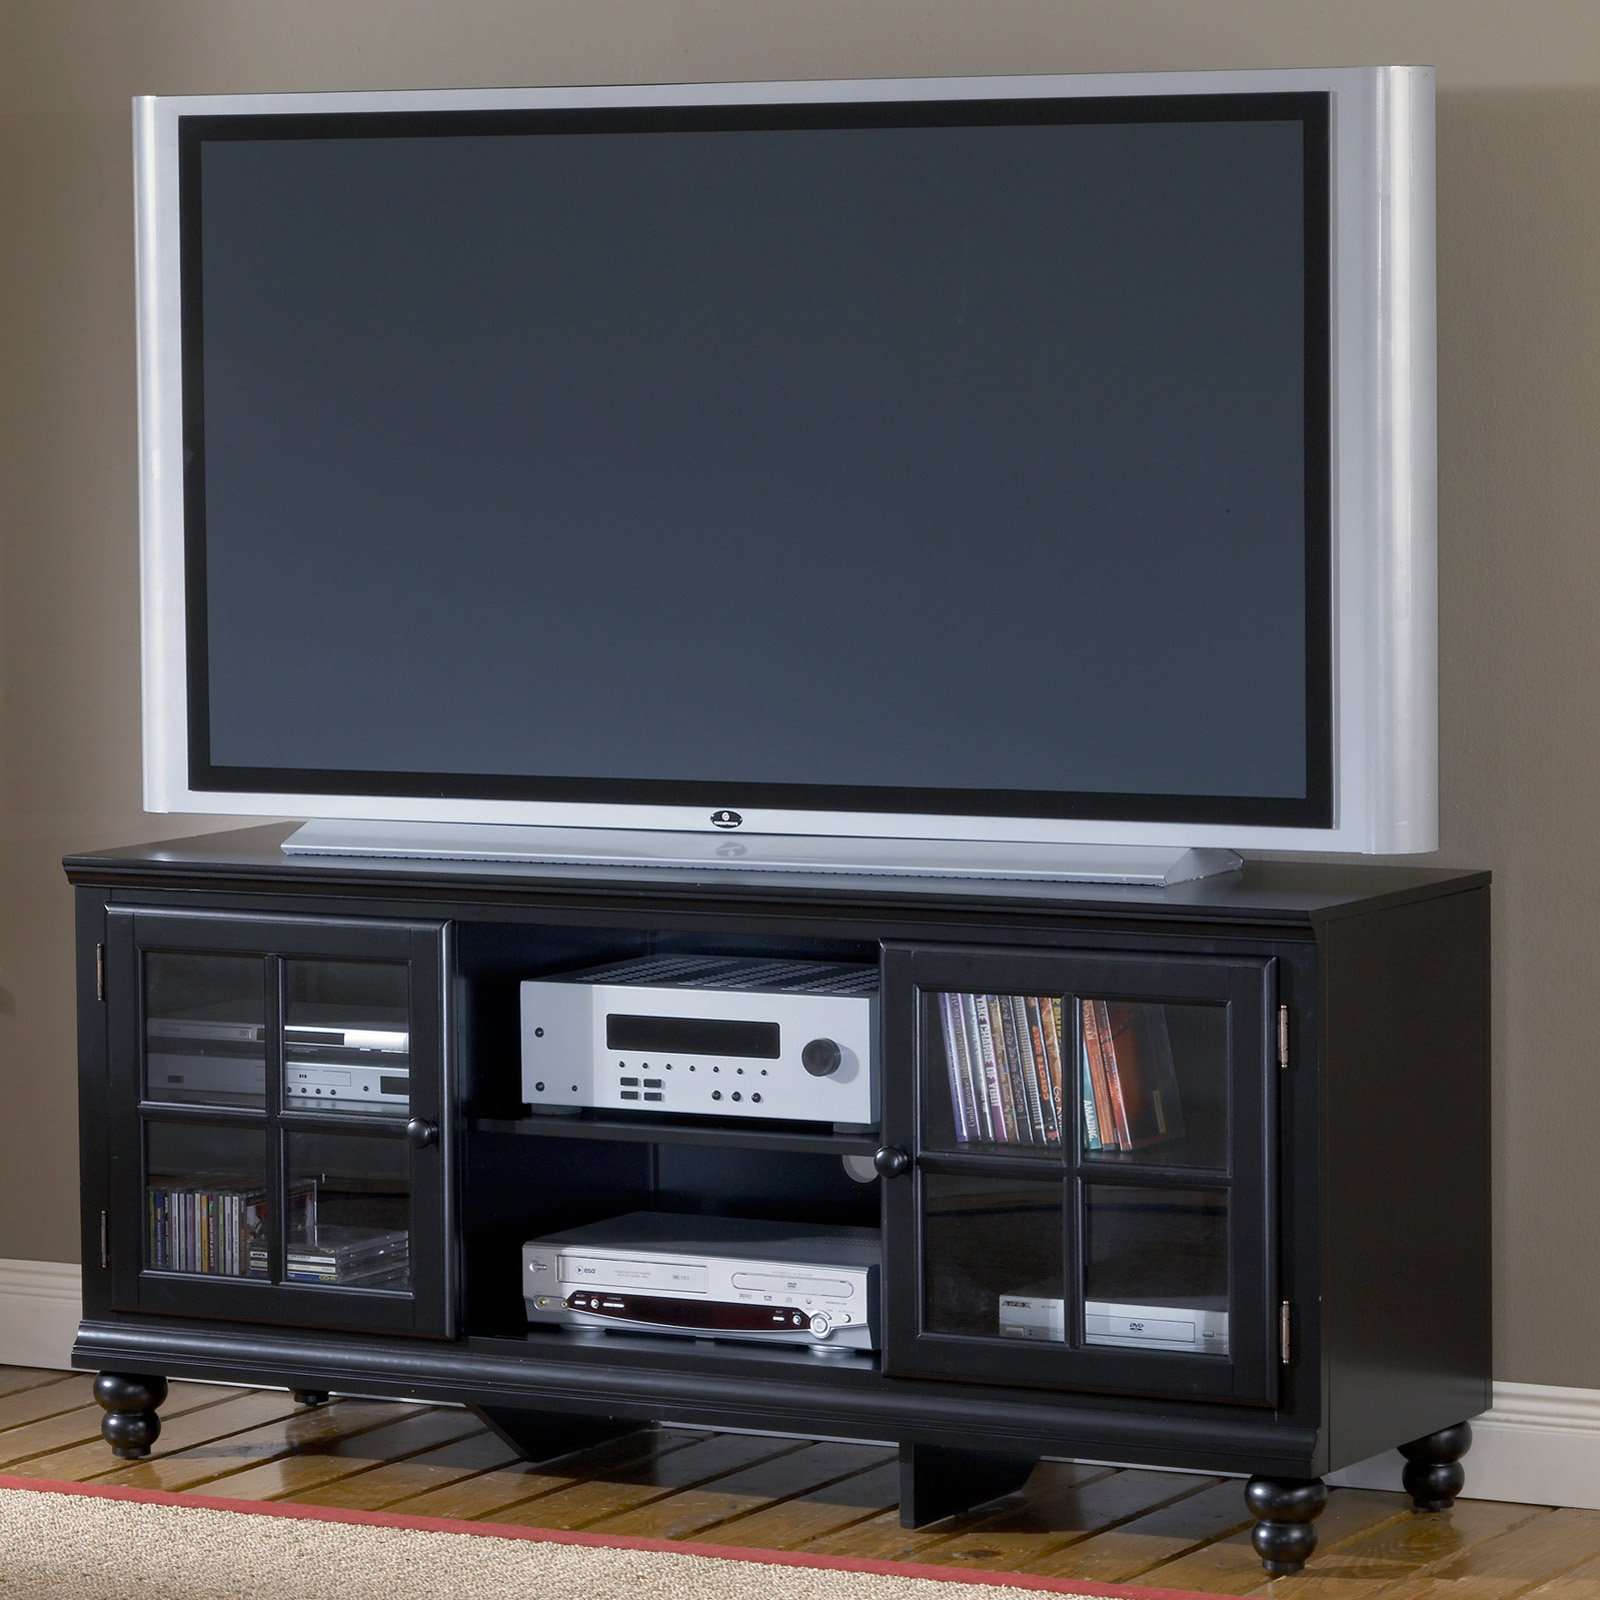 Hillsdale Grand Bay 61 in. Entertainment Console